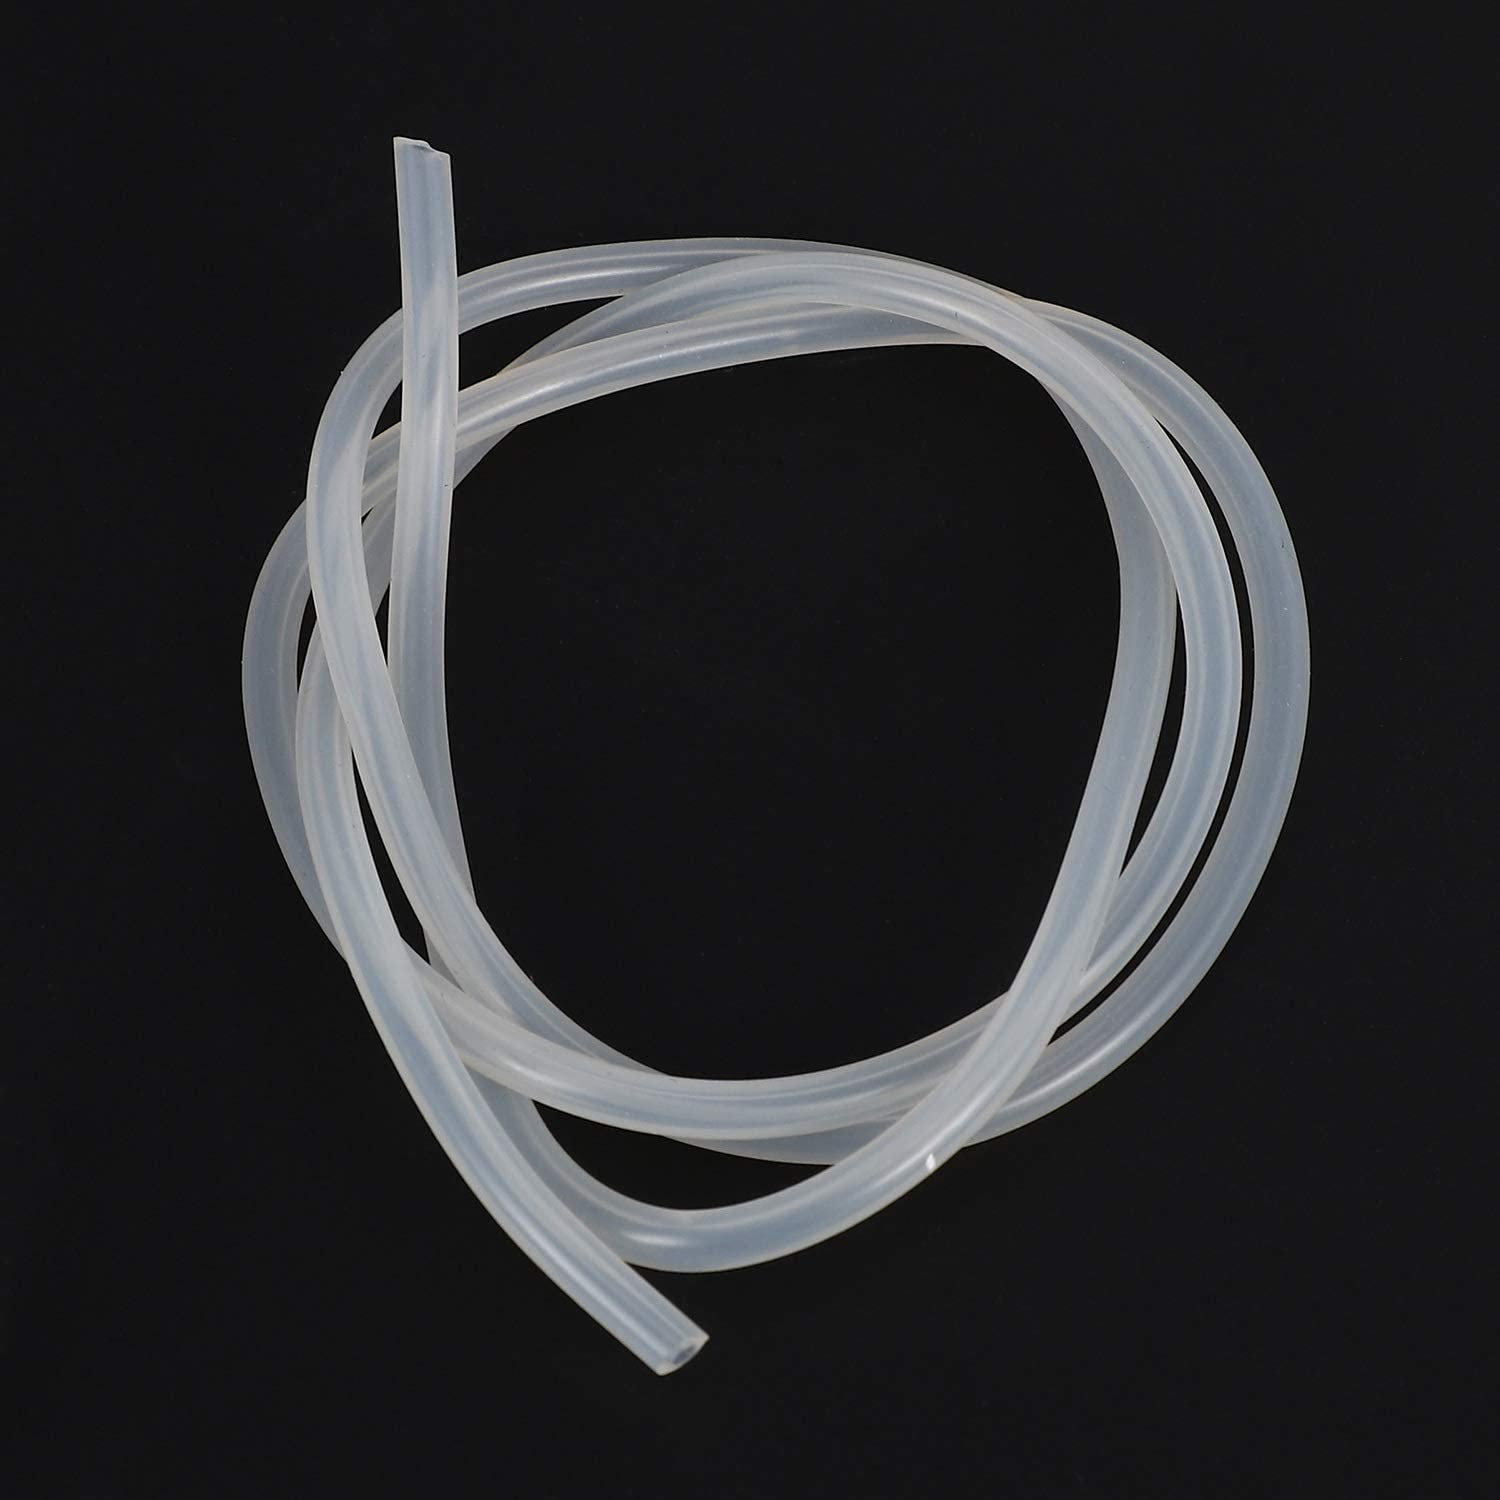 Fauge 100CM RC Car Fuel Gasoline Hose Silicone Hose for 1//10 1//18 Truck Track Accessories White